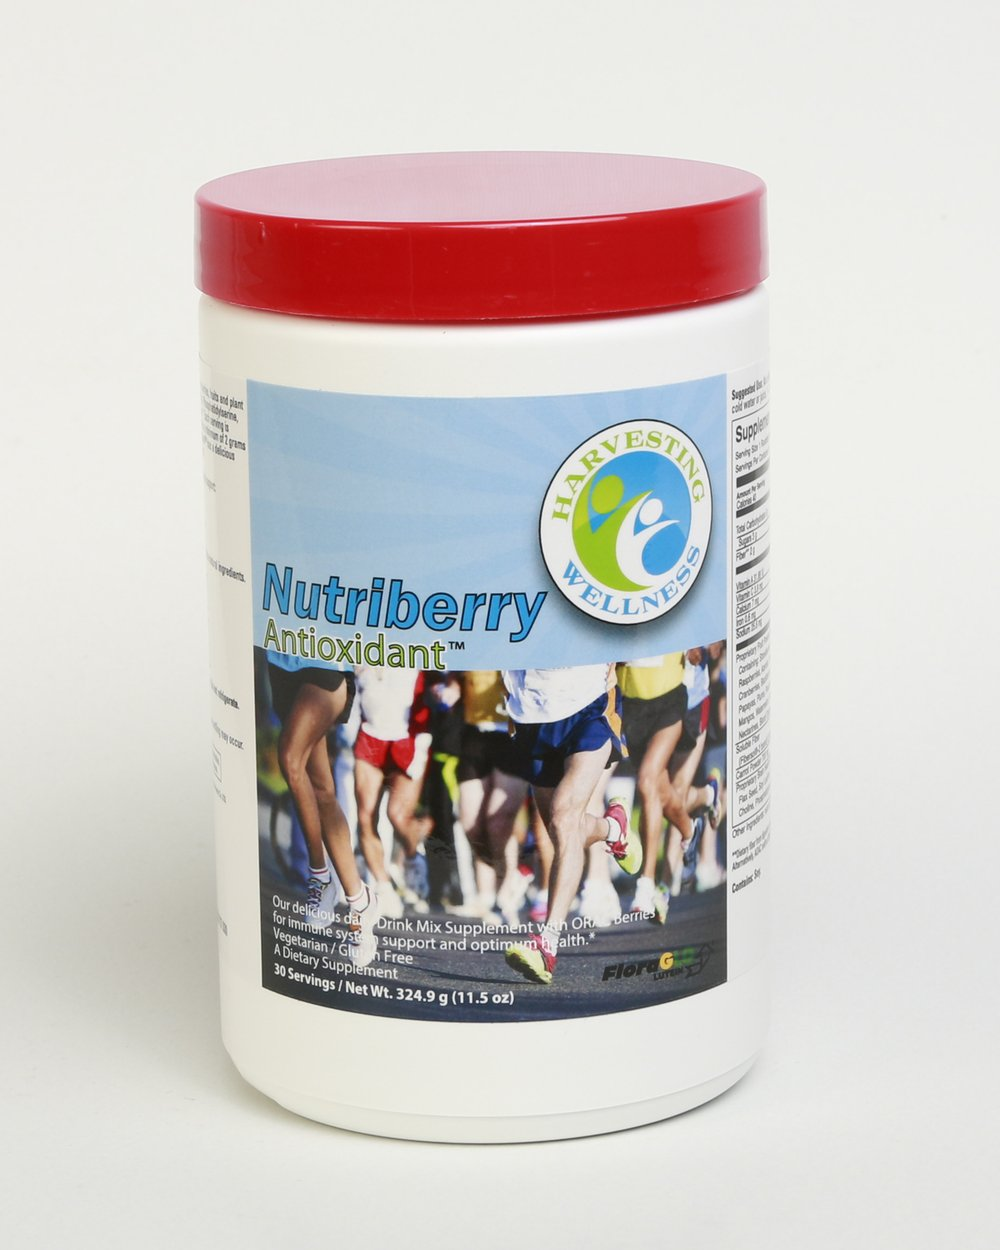 Nutriberry Antioxidant